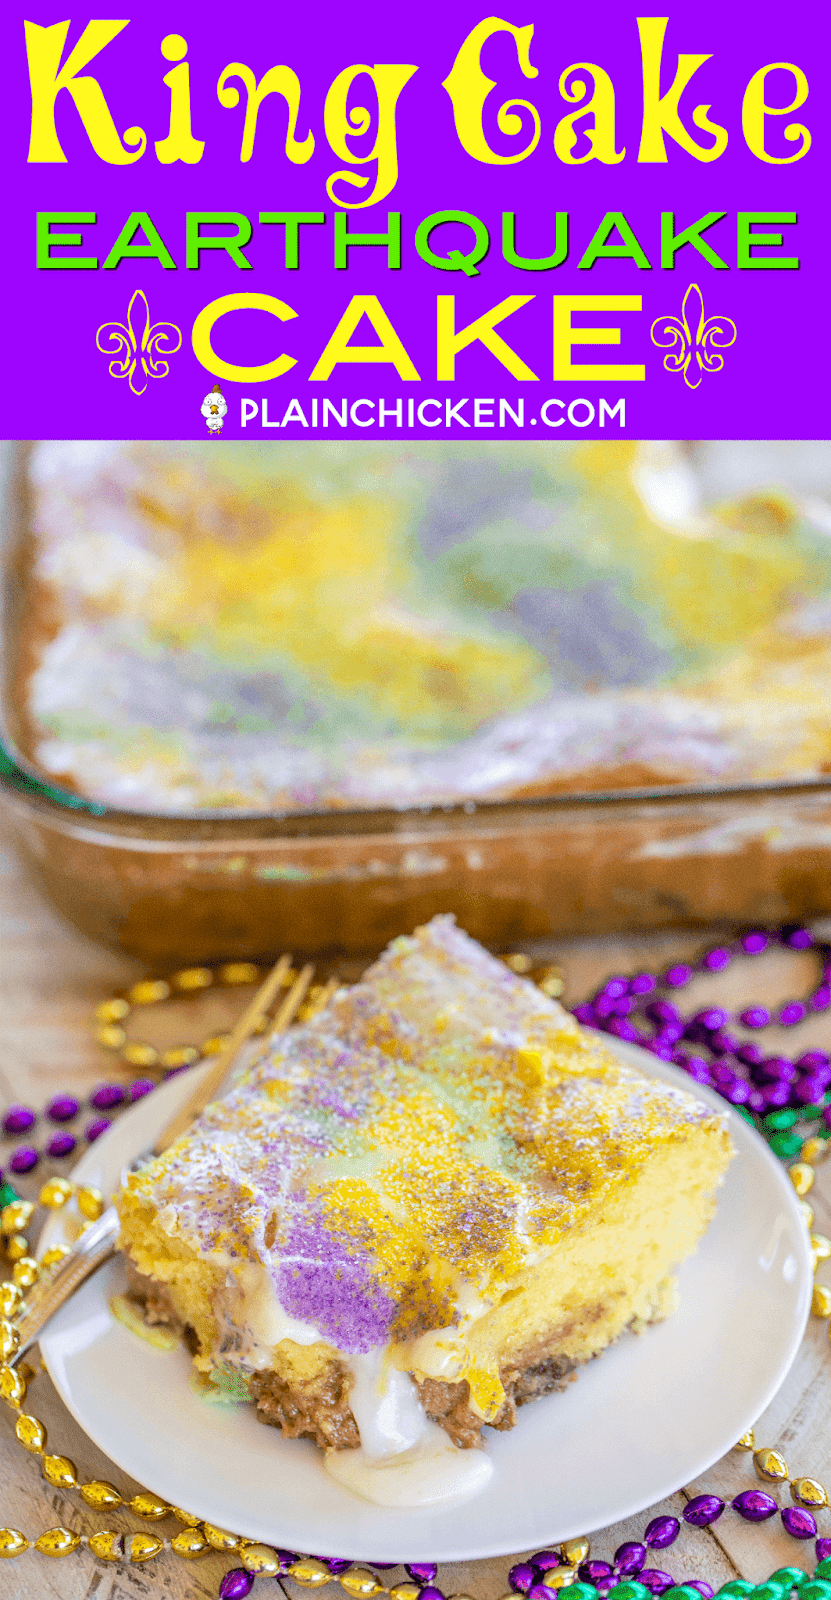 King Cake Earthquake Cake - perfect ending to your Mardi Gras party!! Yellow Cake with pecans and cream cheese. YUM! Cake mix, pecans, cream cheese, butter, powdered sugar, vanilla. Top the cake with a quick glaze and colored sugar. A fun twist on King Cake! Great for dessert or breakfast! #cake #dessert #mardigras #kingcake